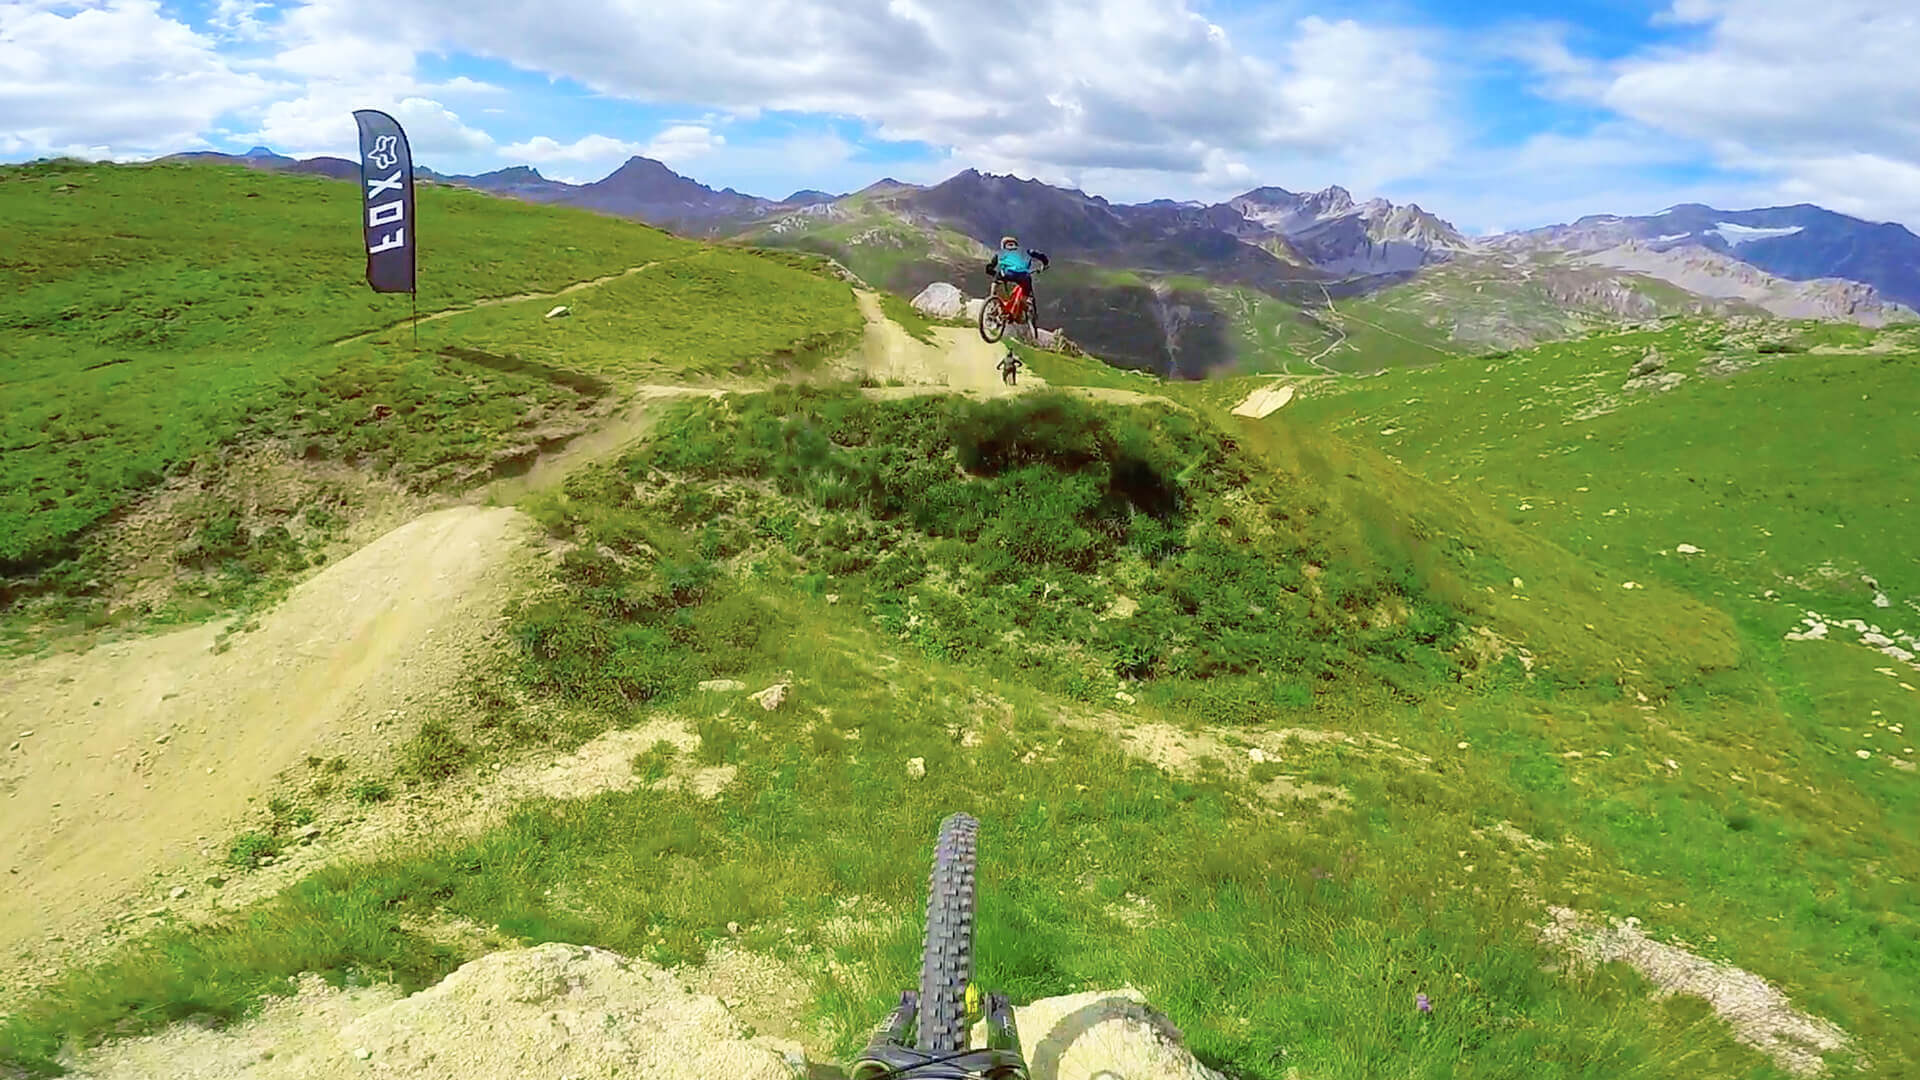 kamasutrail-by-gopro-tignes-bike-park-france-SC34-HD